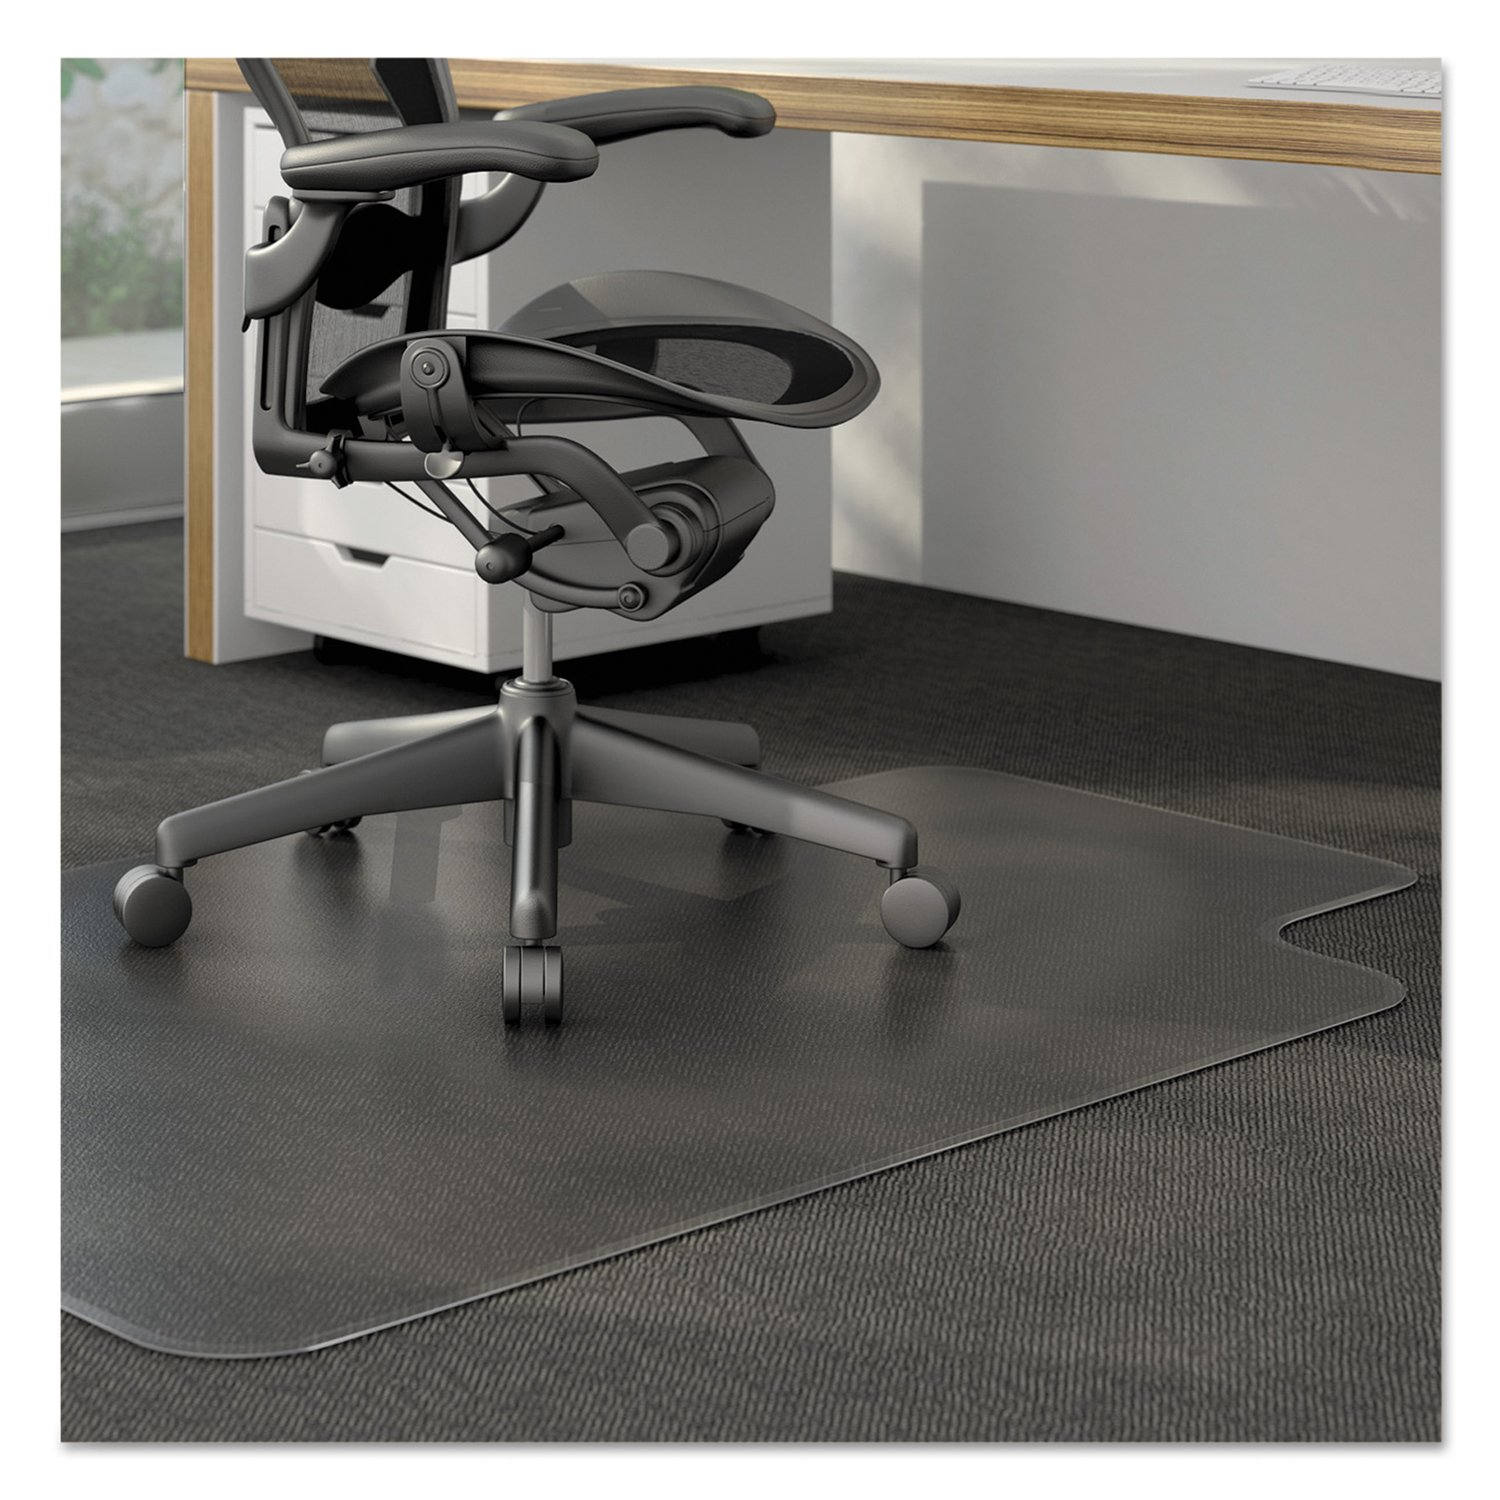 clear office rolling cheap mats heavy mat for carpet duty protectors floor small desk wood full plastic of size chairs hardwood chair under hard decoration seat protector round runner